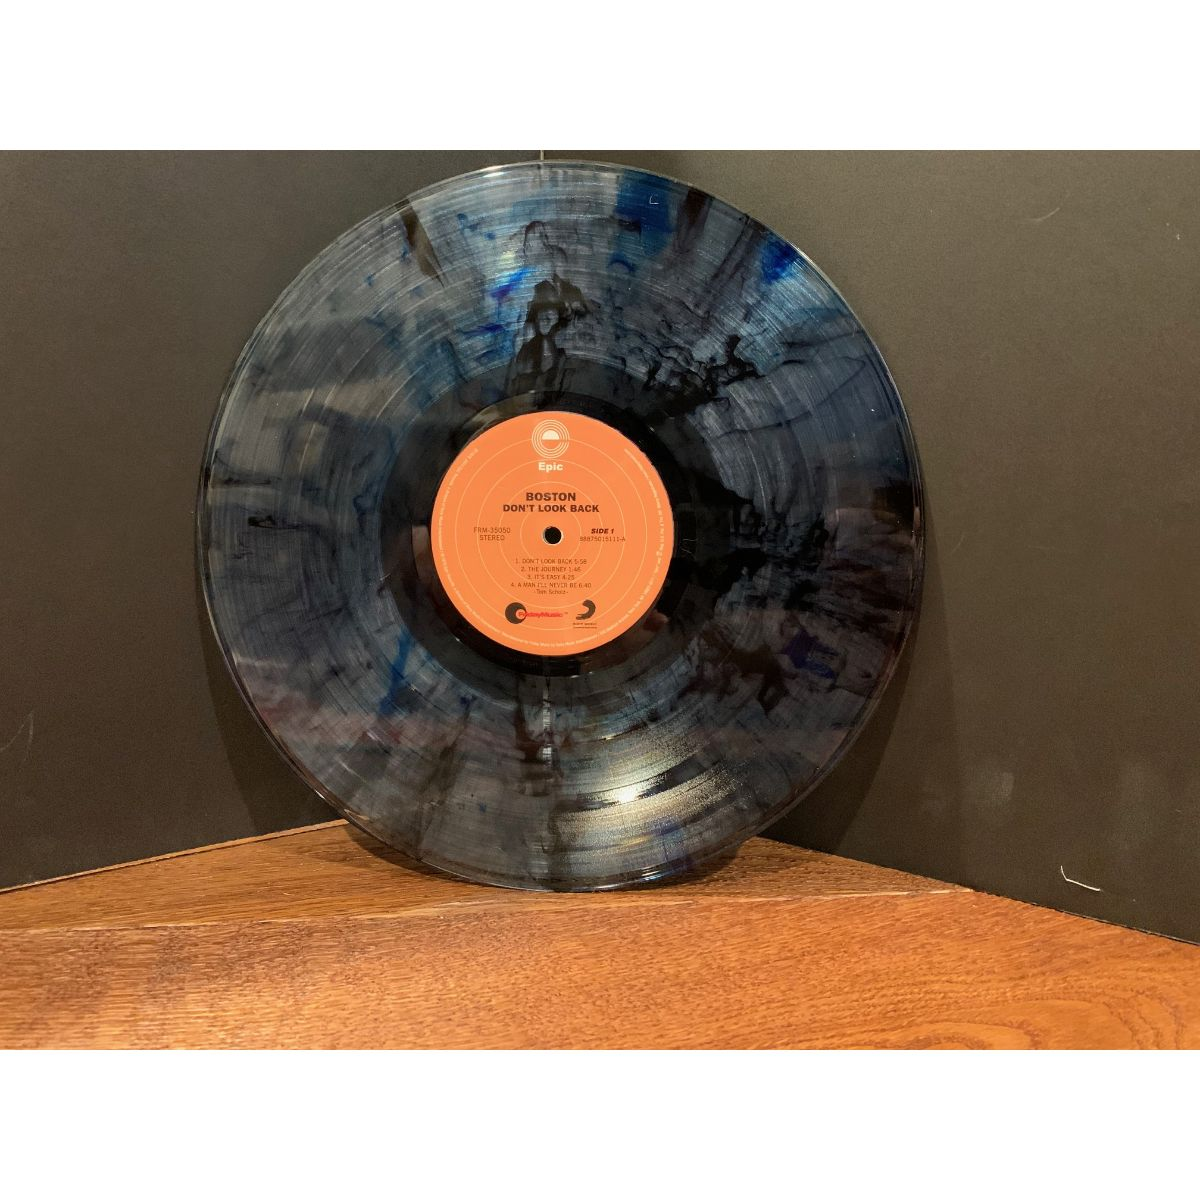 Boston - Don't Look Back (180 Gram Blue and Black Swirl Vinyl / Limited Anniversary Edition / Gatefold Cover)